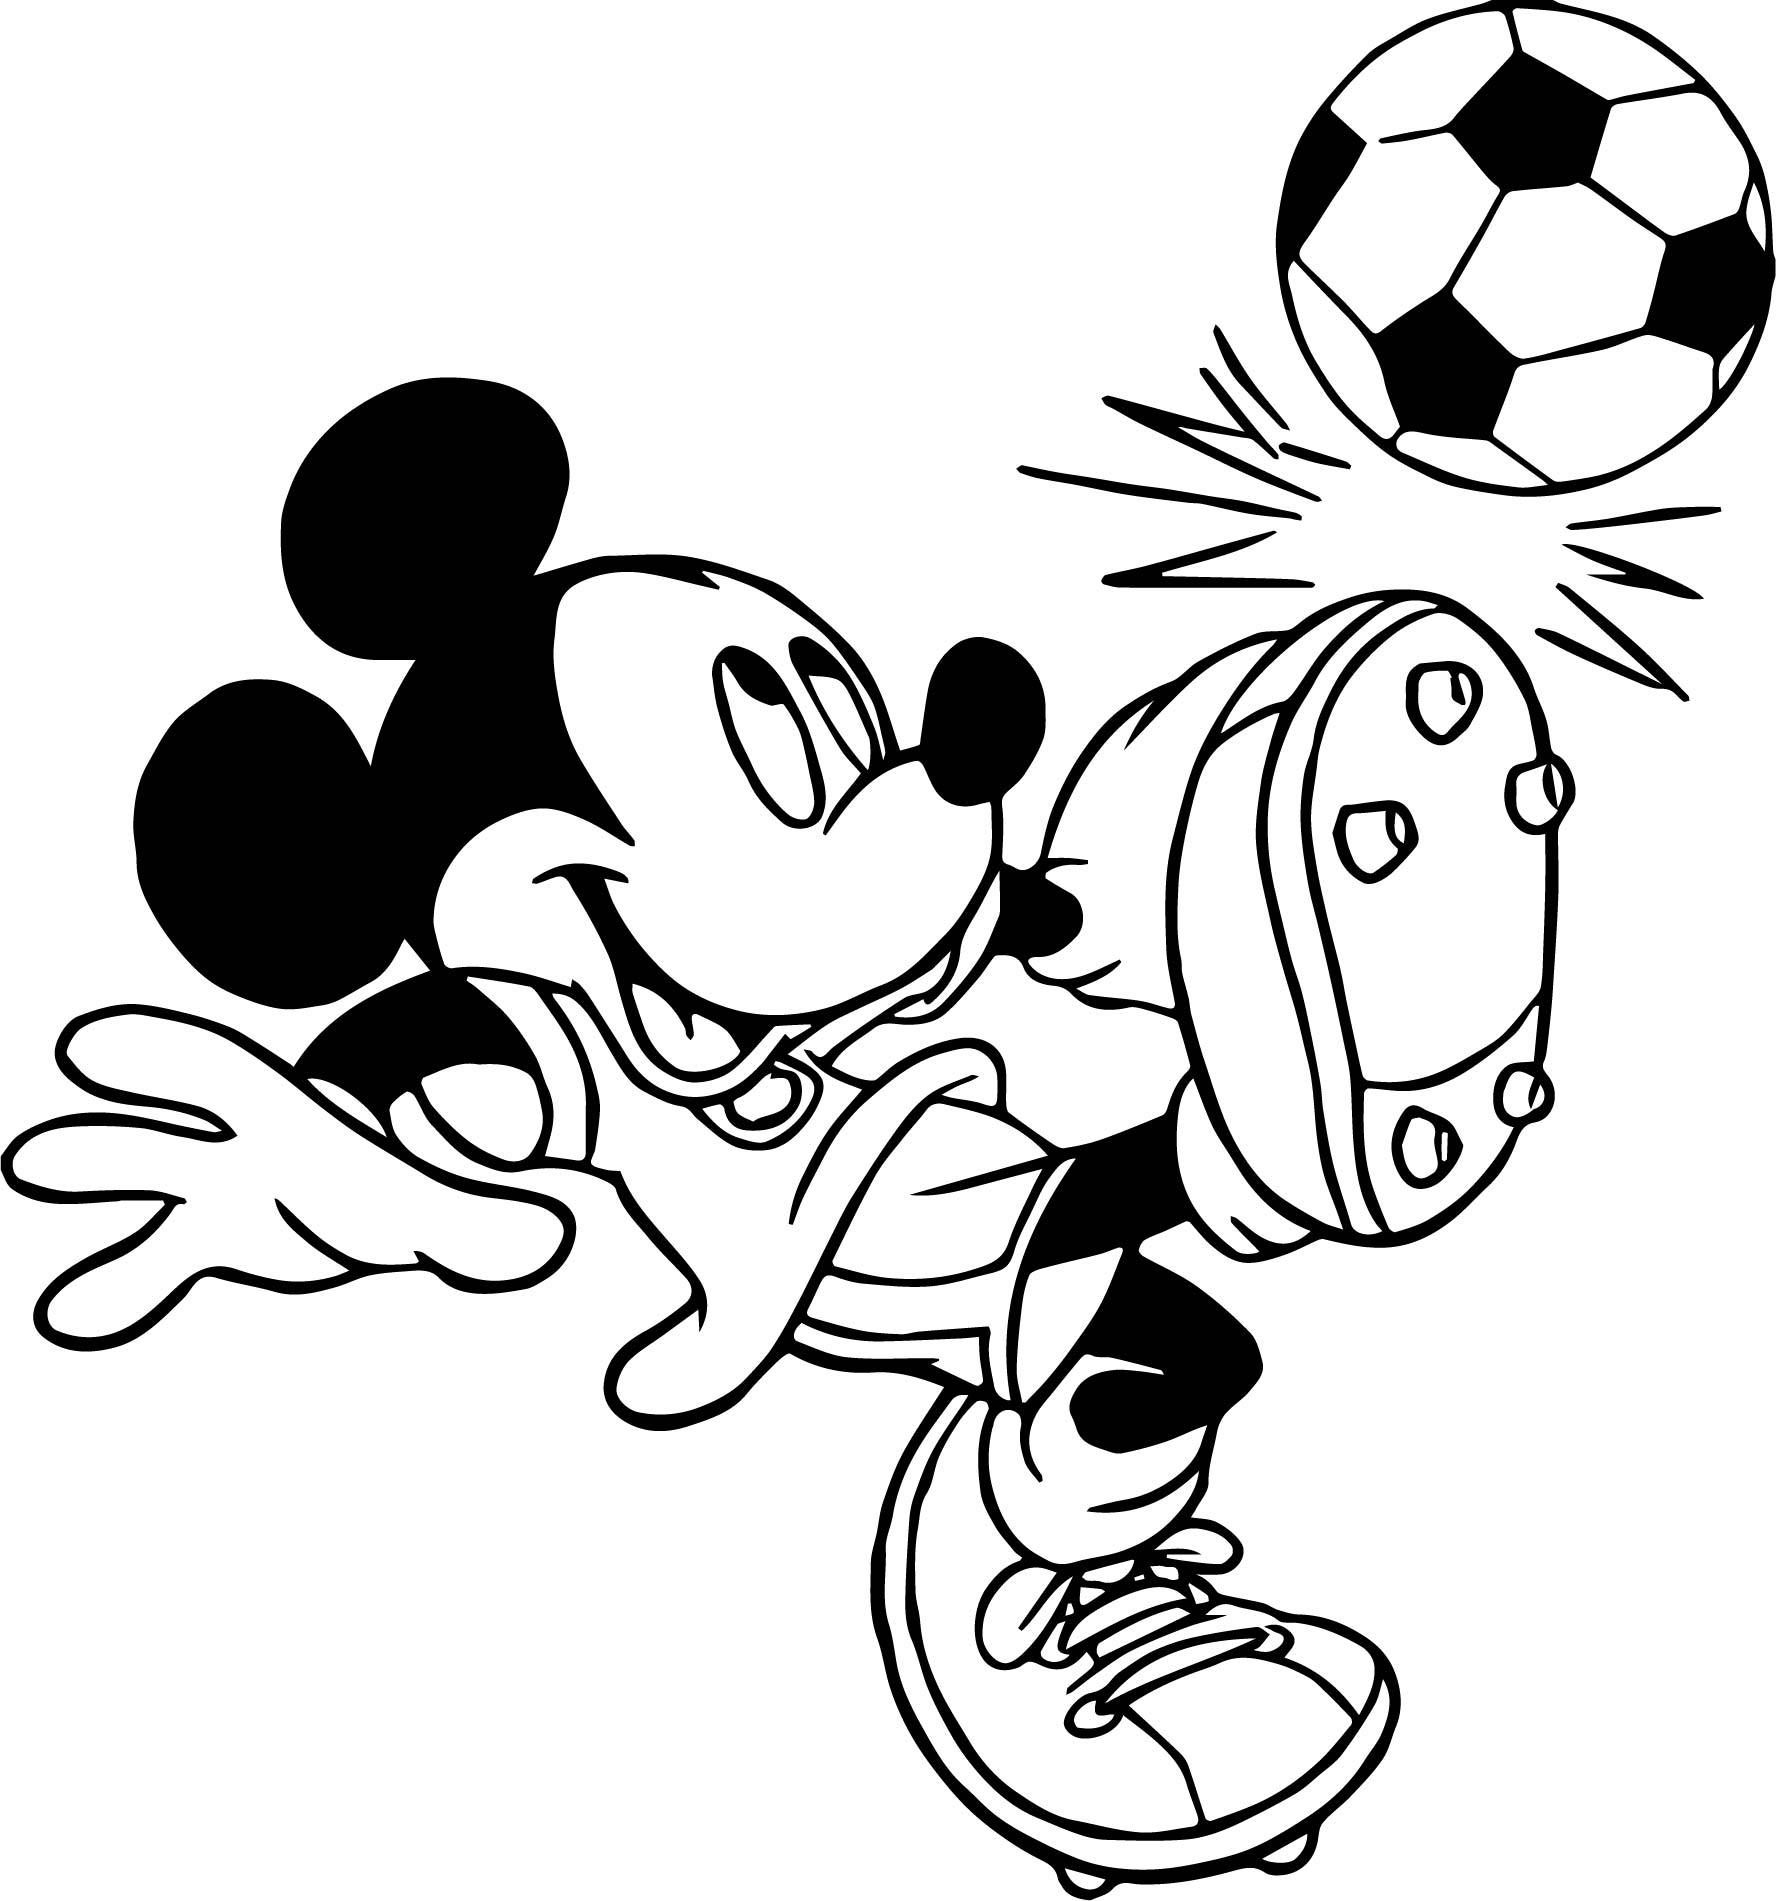 1776x1901 Marvelous Goofy Coloring Pages Books Preschool In Good Image